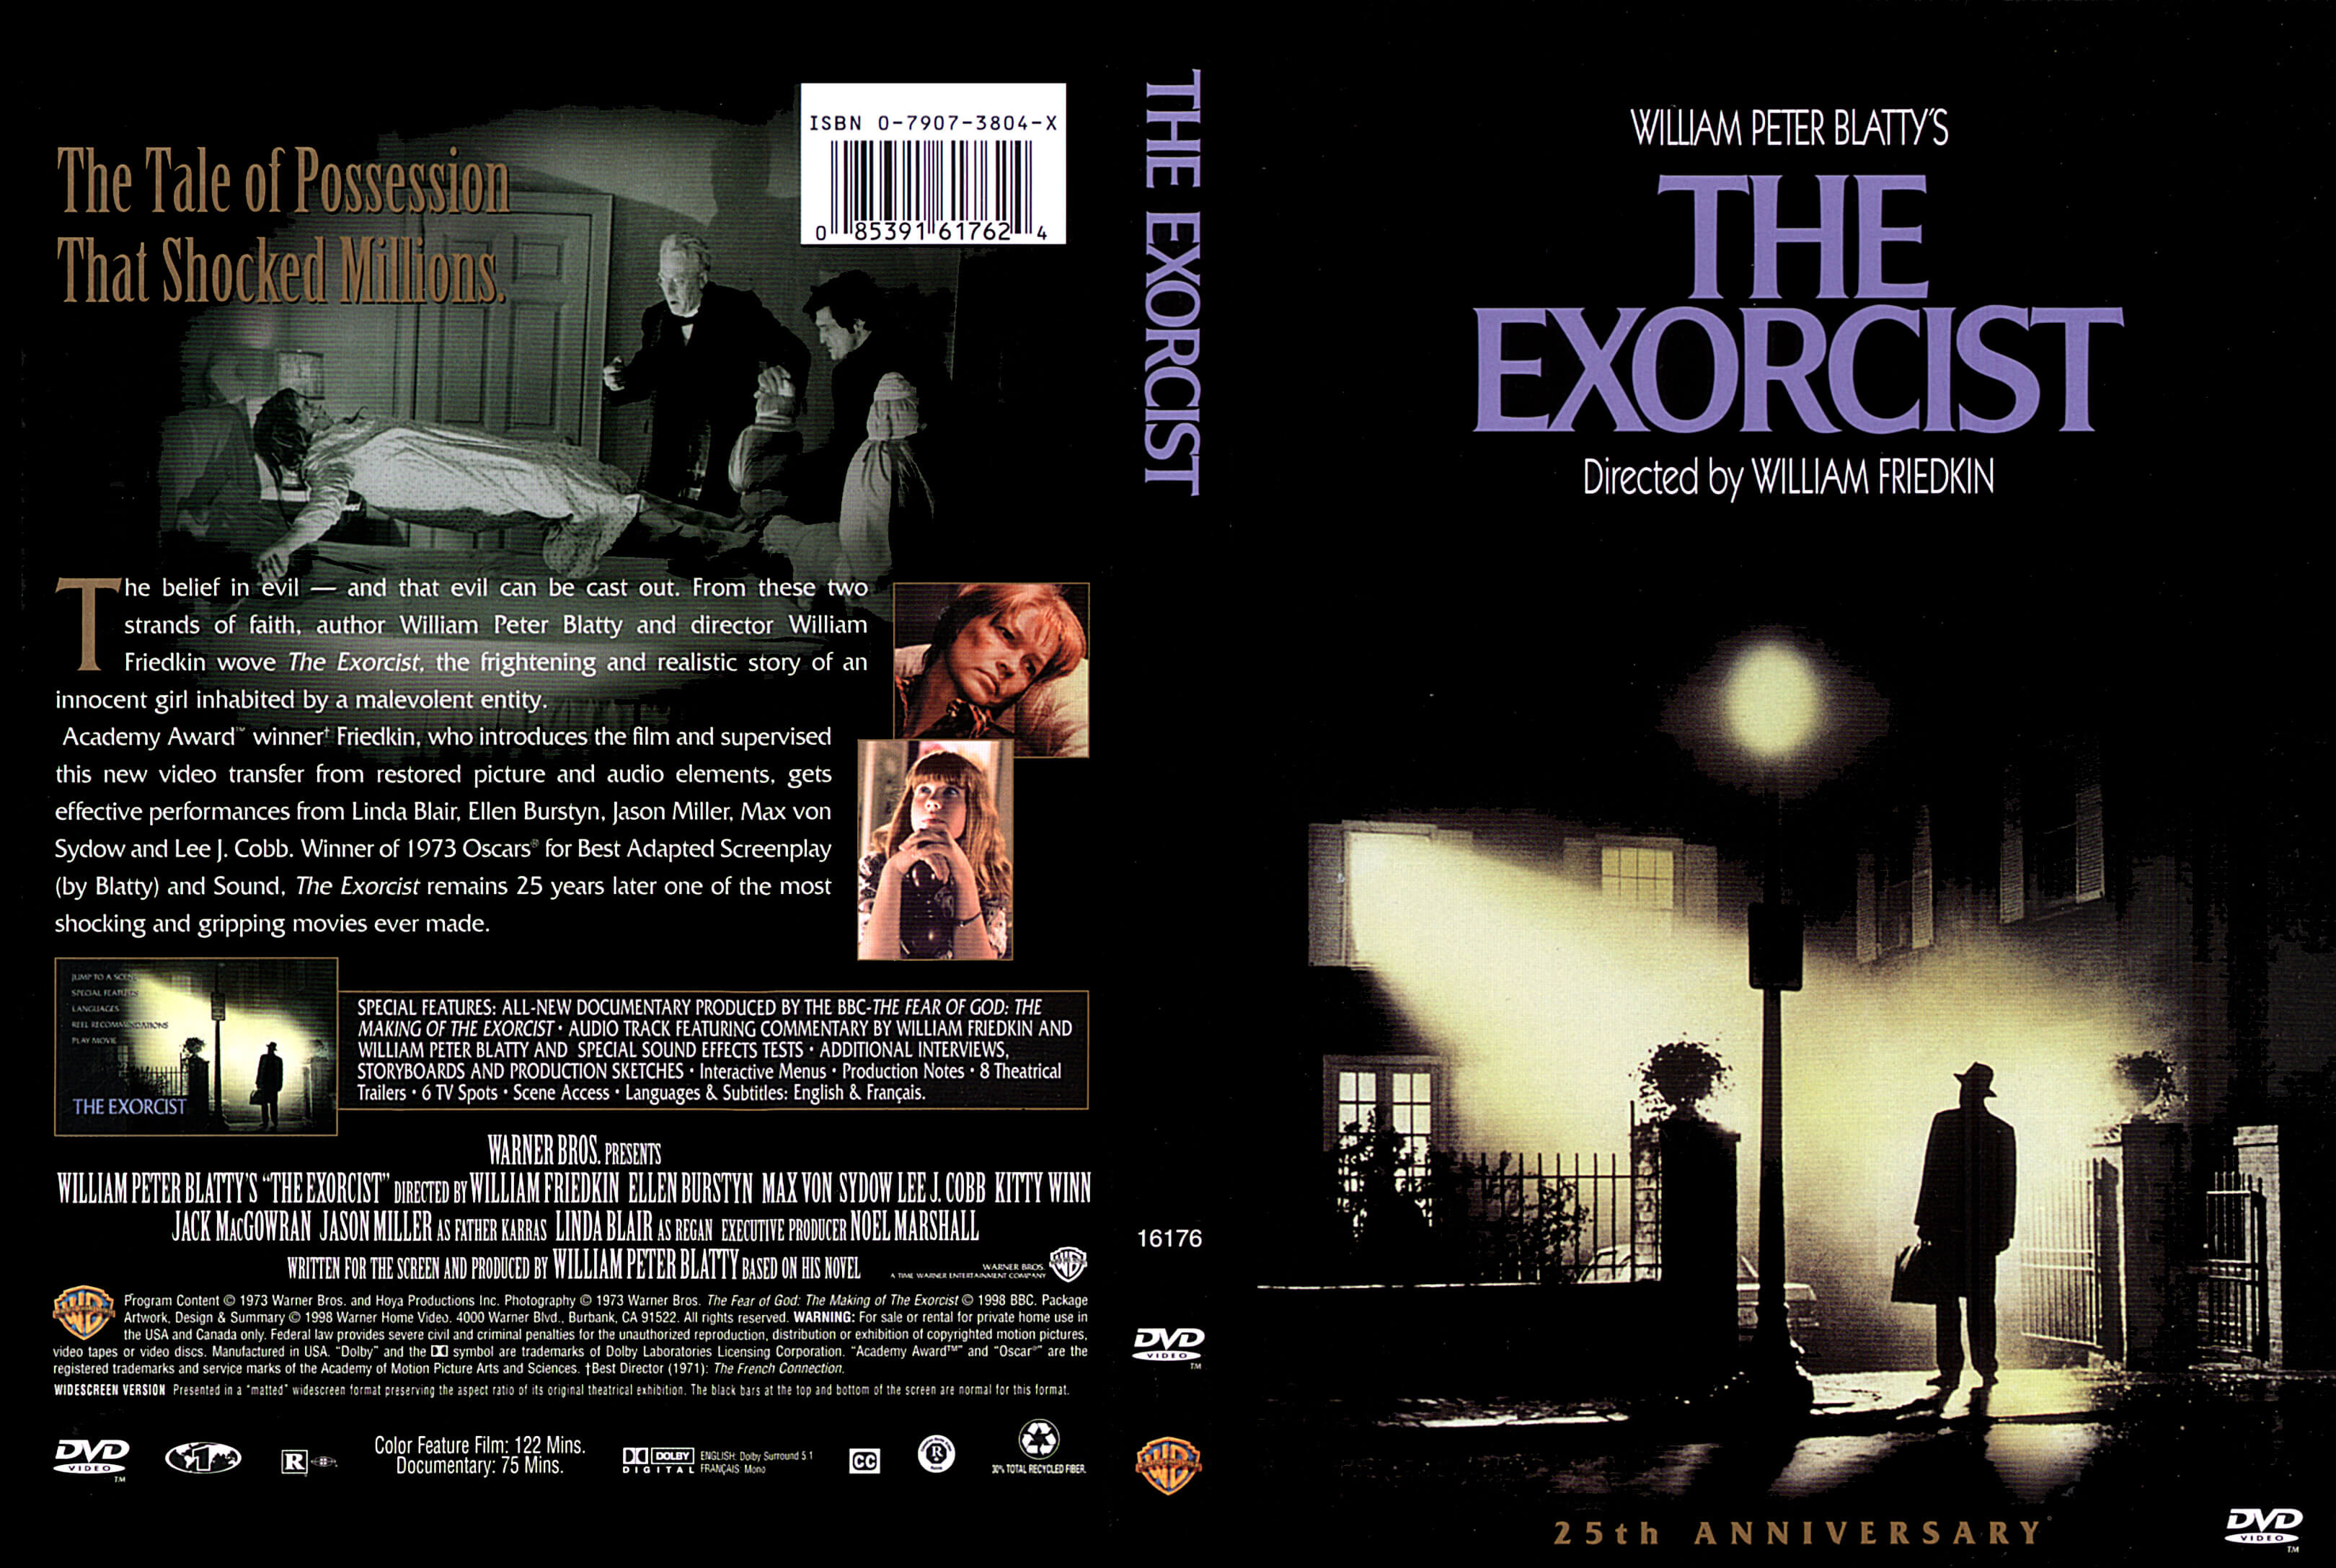 The-Exorcist - the best horror movies